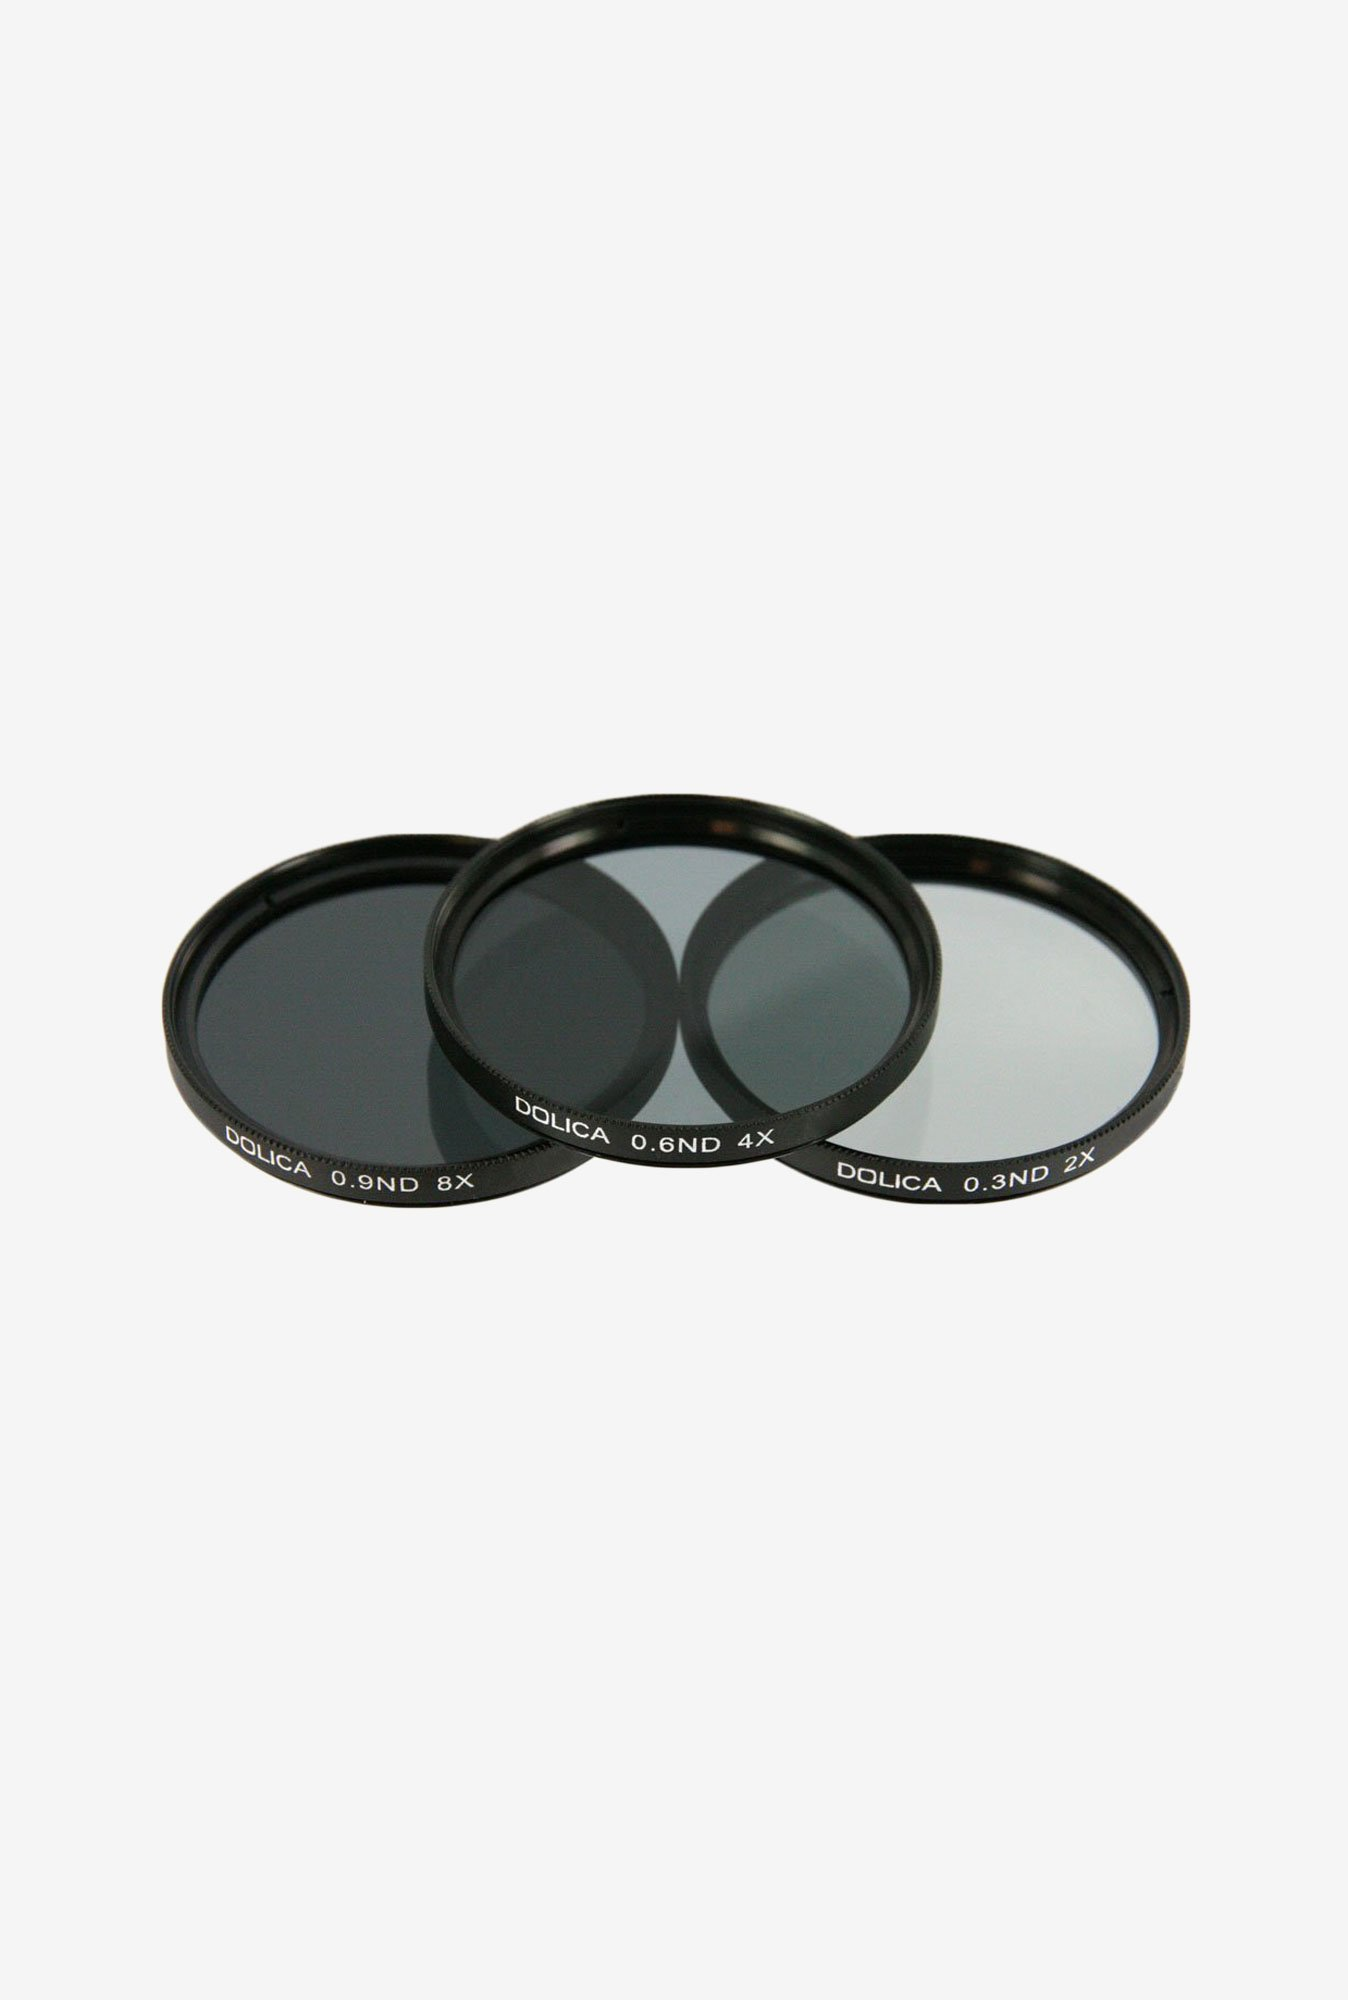 Dolica CF-NDK67 Neutral Density Filter Kit (Black)